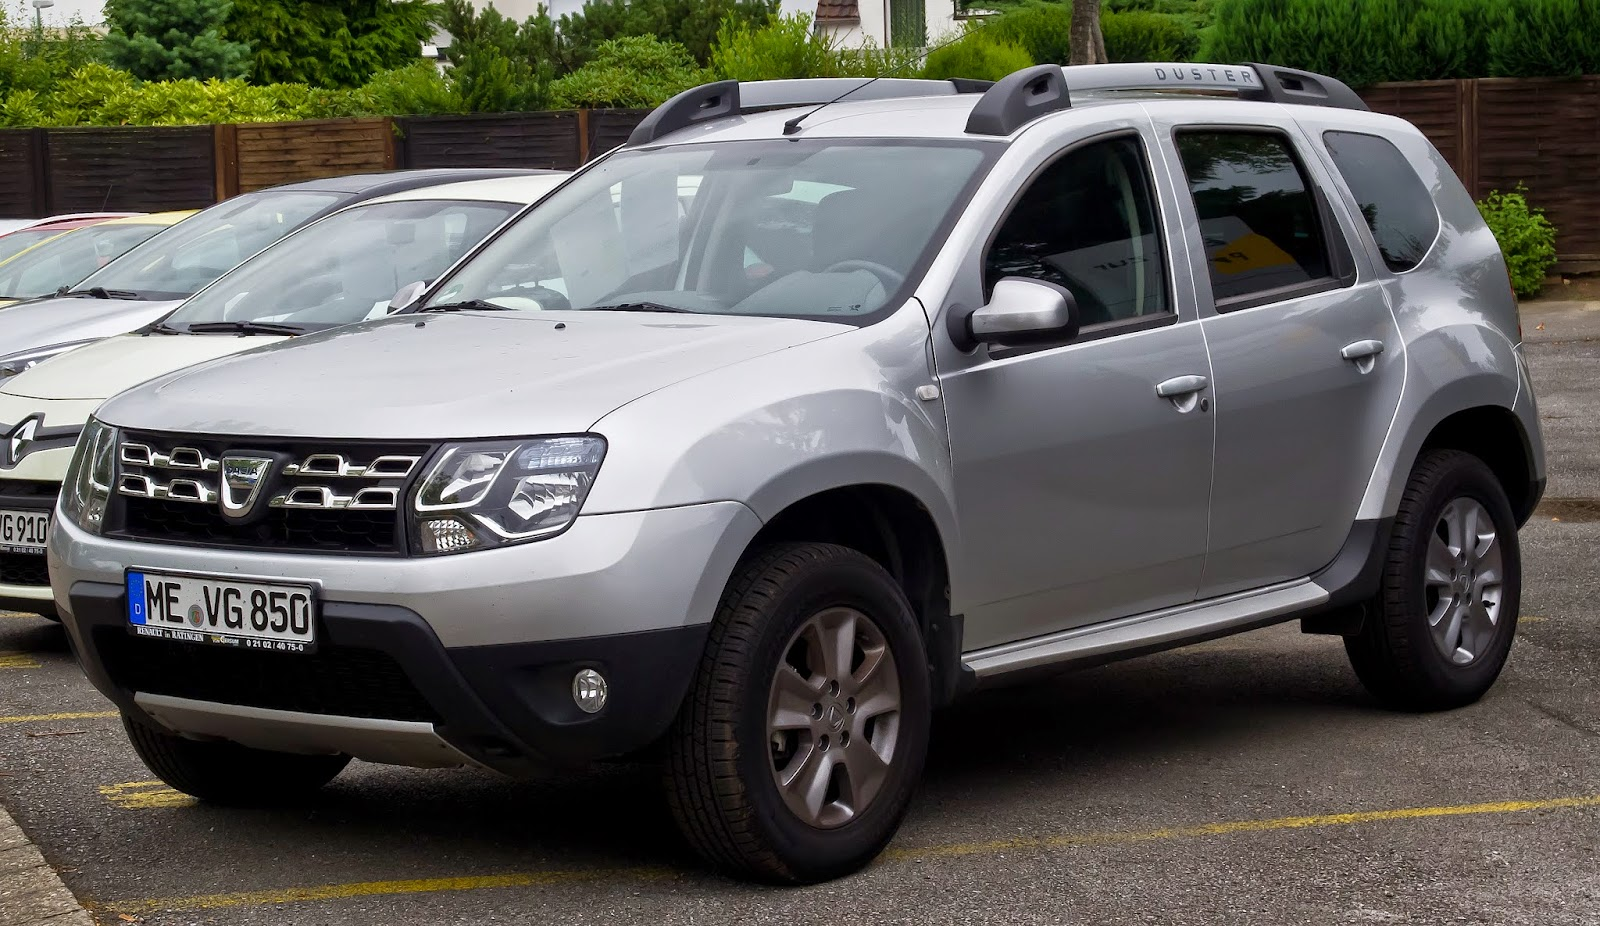 2013 facelifted Dacia Duster. In 2013, 30% of the Duster sold in the world are badged Dacia and 70% are sold under the Renault marque. The Dacia Duster is the third most sold SUV in the world.